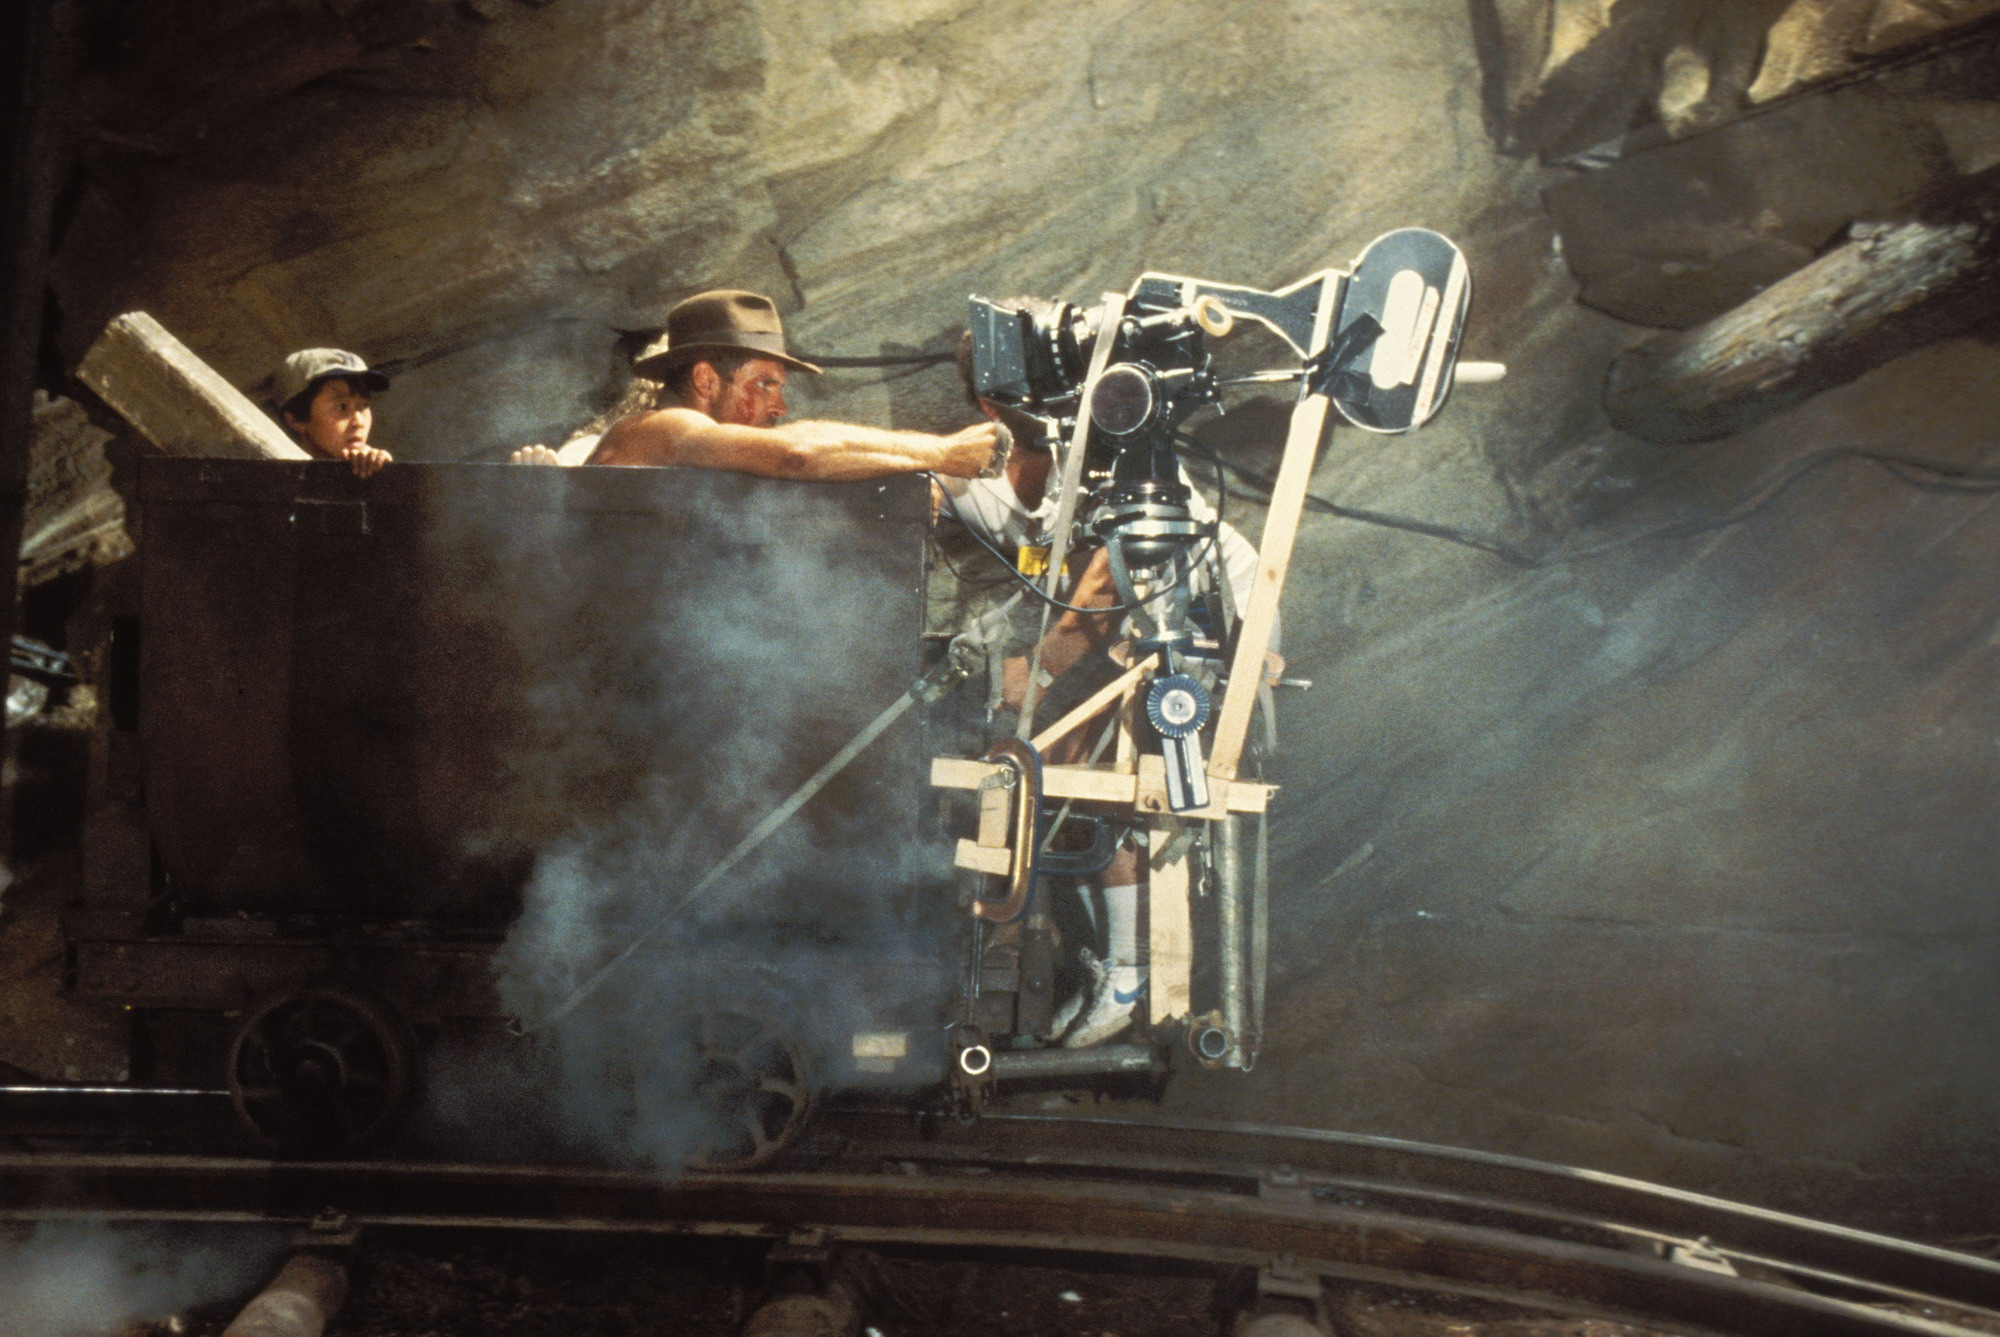 photo tournage coulisse cinema IndianaJones 25 Photos sur des tournages de films #2